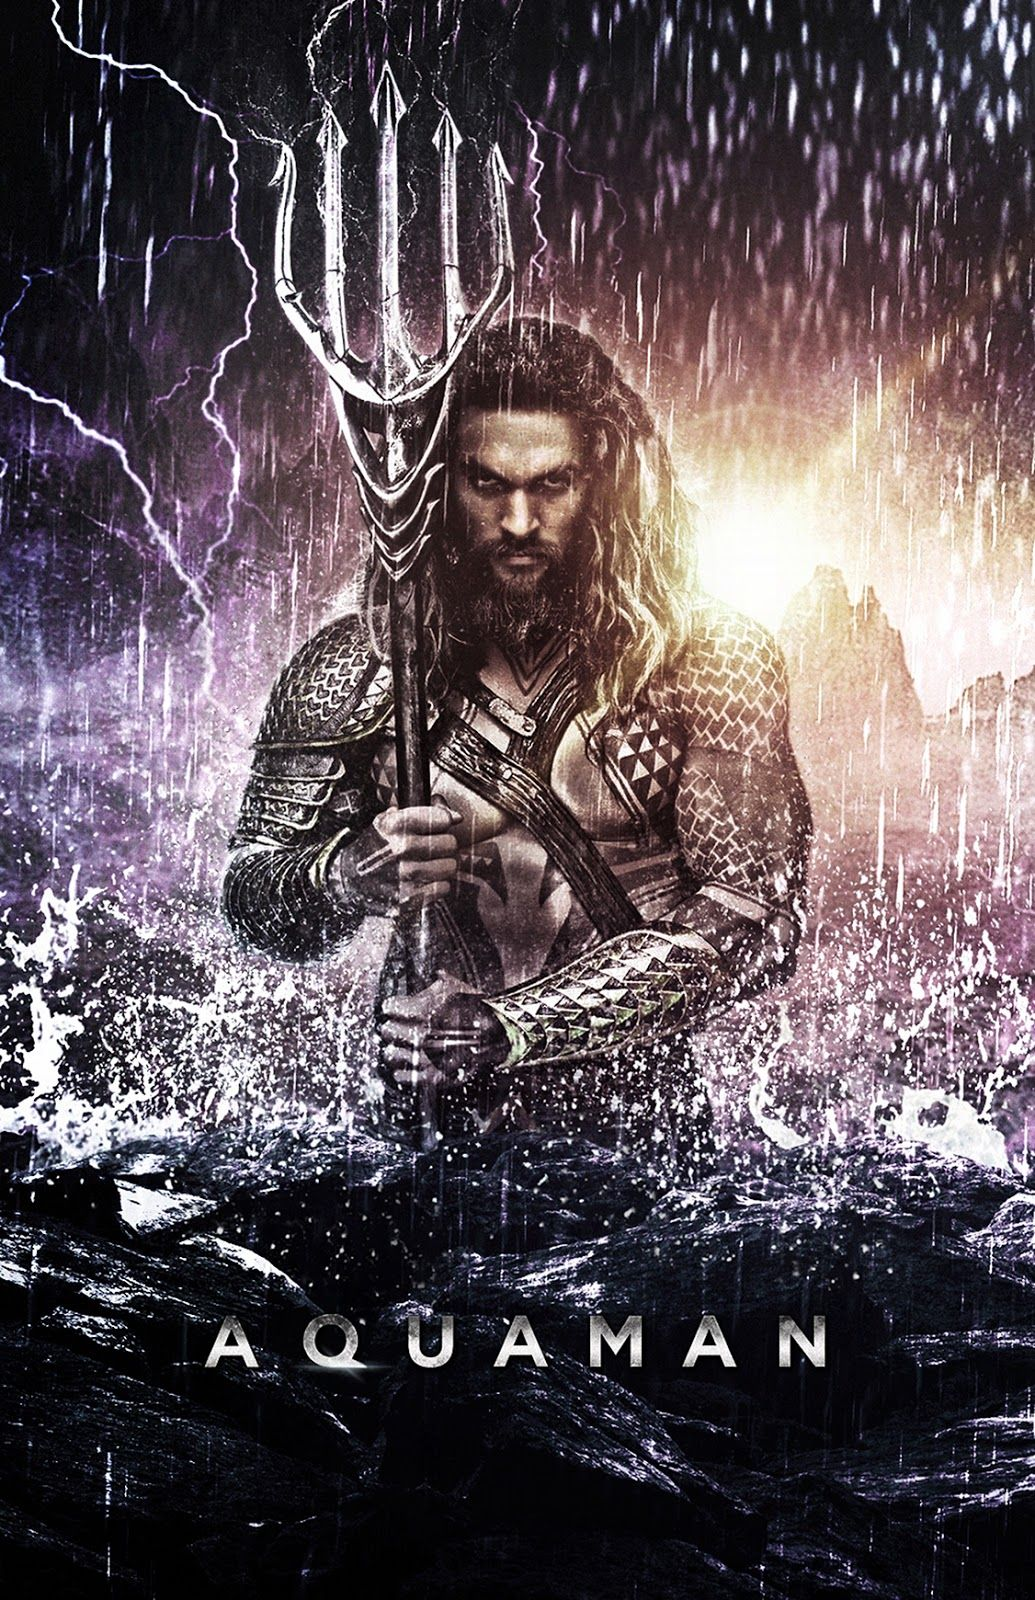 Aquaman 27th July 2018 1035 X 1600 Hd Wallpaper From Gallsource